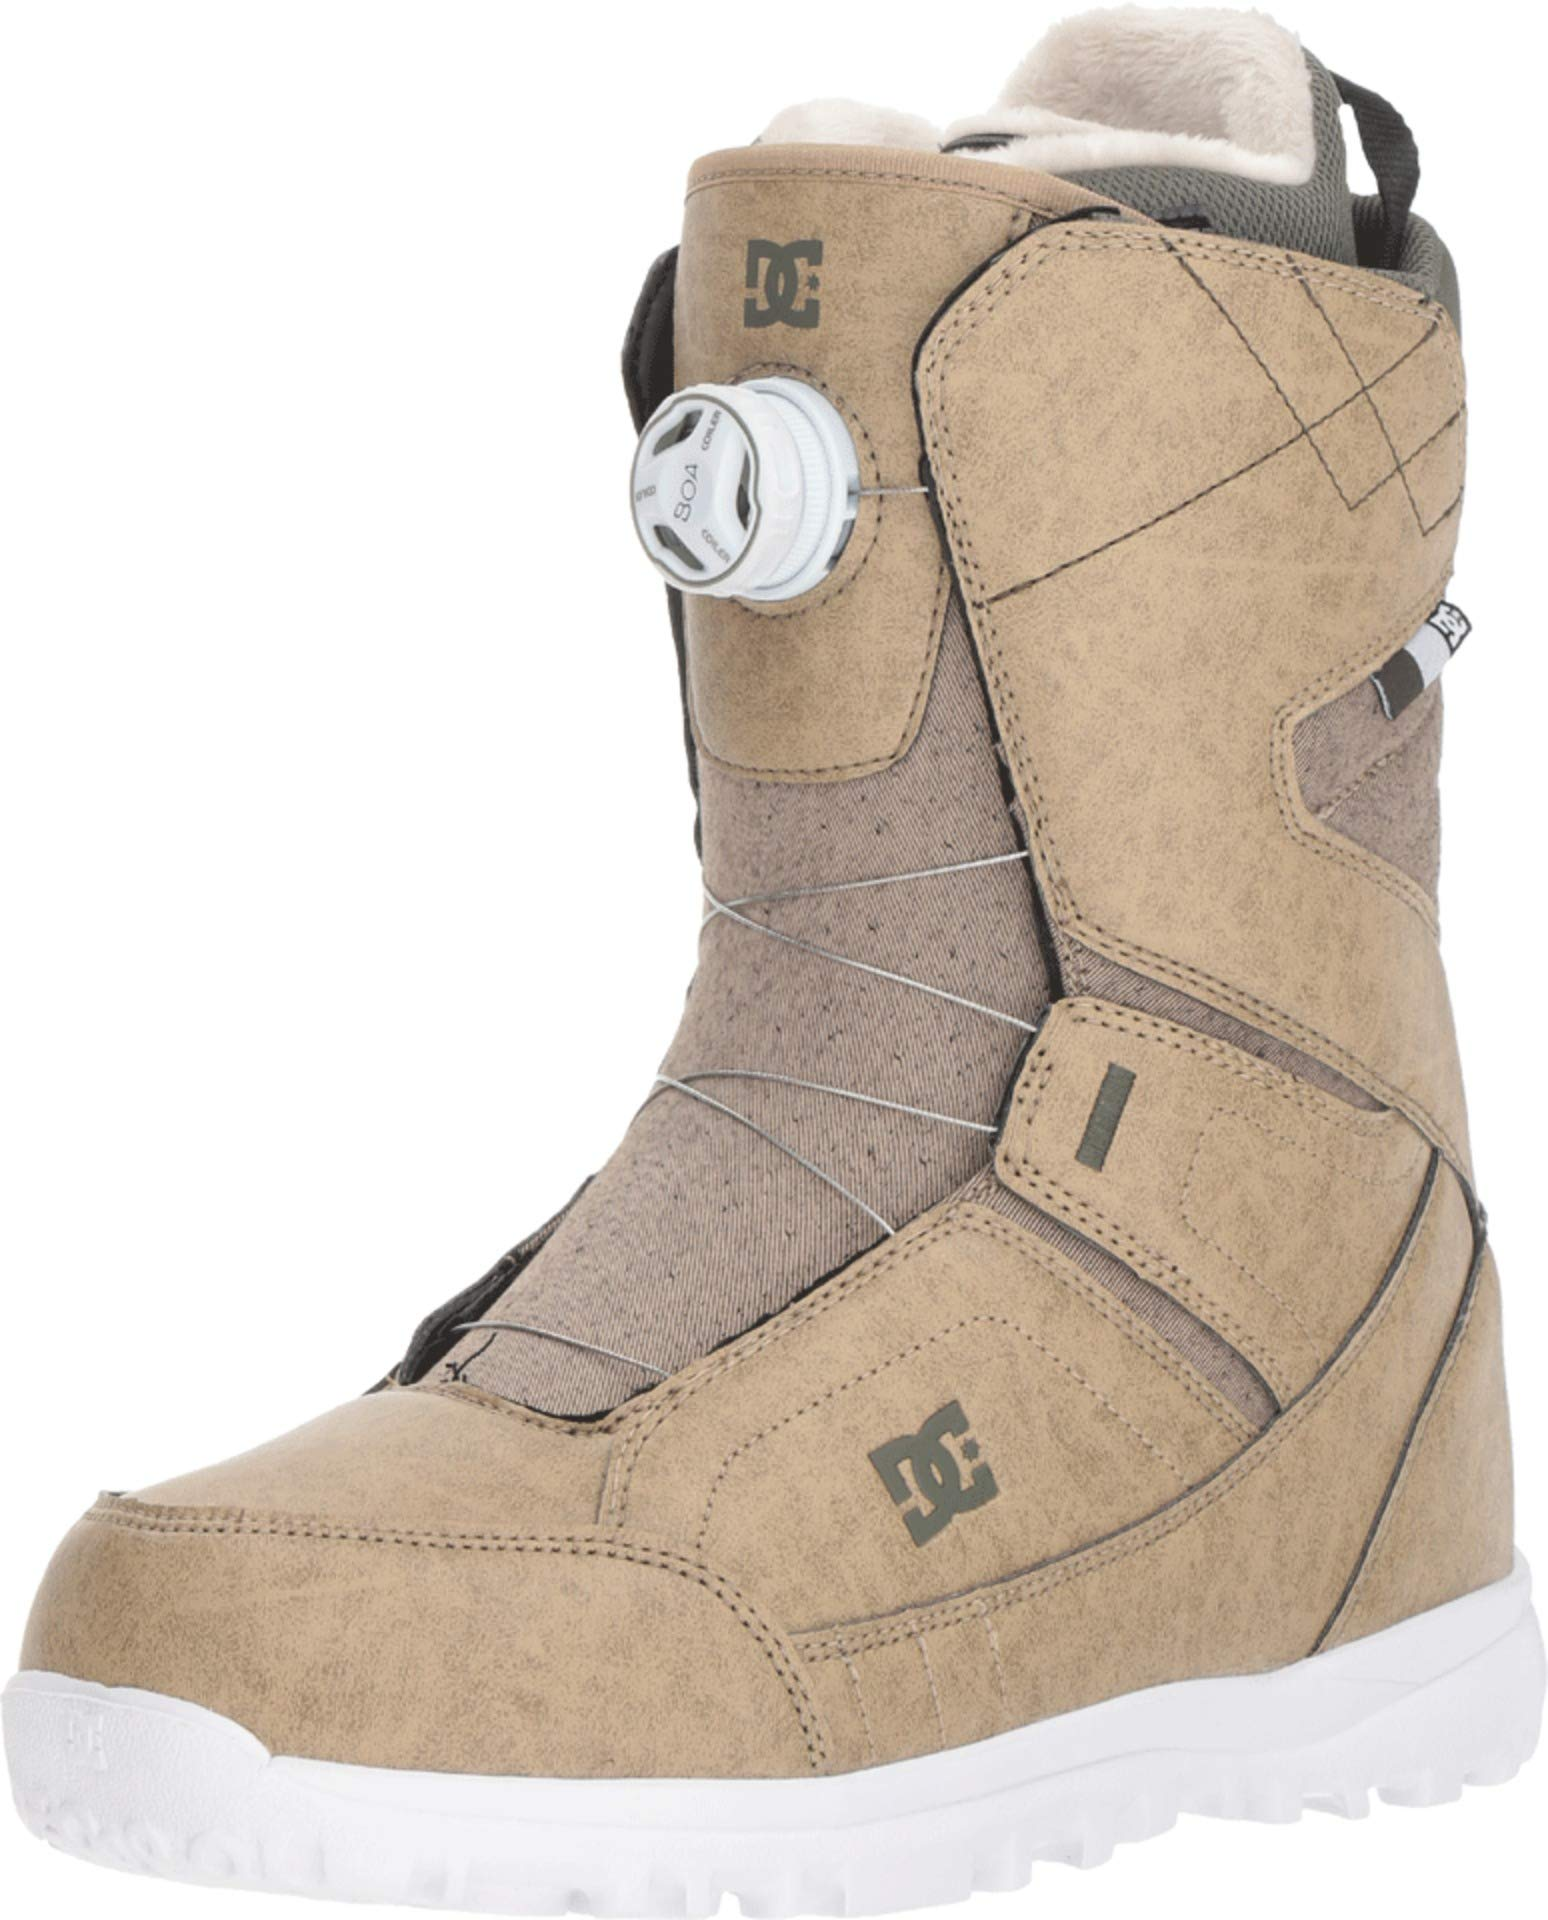 DC Search BOA Snowboard Boots Incense Womens Sz 8.5 by DC